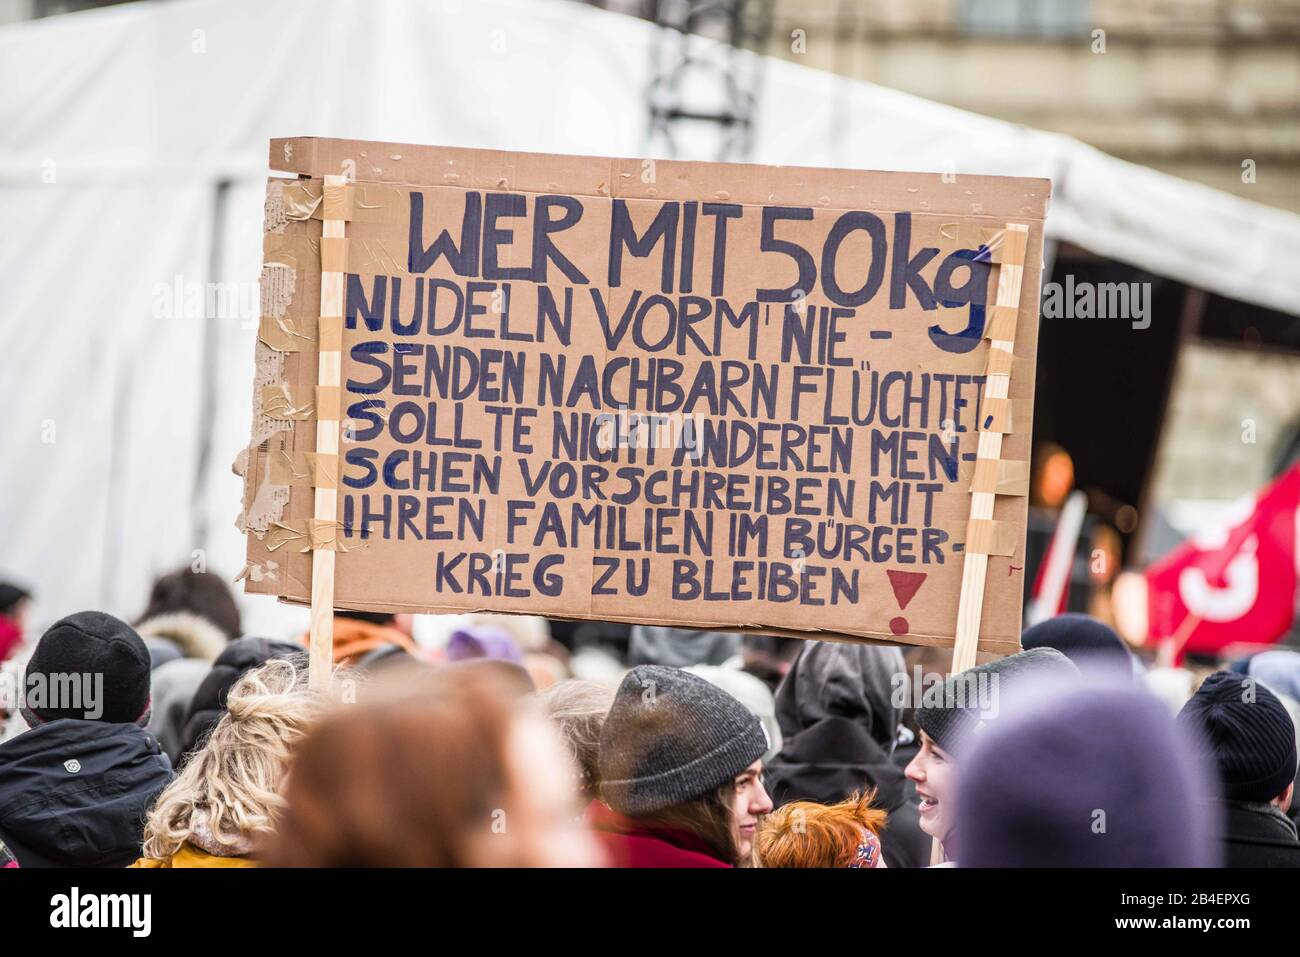 """Munich, Bavaria, Germany. 6th Mar, 2020. A sign criticizing Germany for ''Hamster Shopping'' as a response to the Coronavirus, leaving pasta and toilet paper shelves throughout the country empty. As a response to the politics of hate and the terror attack in Hanau many attribute to the Alternative for Germany (AfD) party and the CSU of Bavaria, the Bellevue di Monaco and the Bayerisches Fluechtlingsrat (Bavarian Refugee Center) organized the """"Just Don't Do It"""""""" demonstration at Max Joseph Platz to oppose hate and right-wing terrorism in Germany. Counting the latest developments, Germany Stock Photo"""